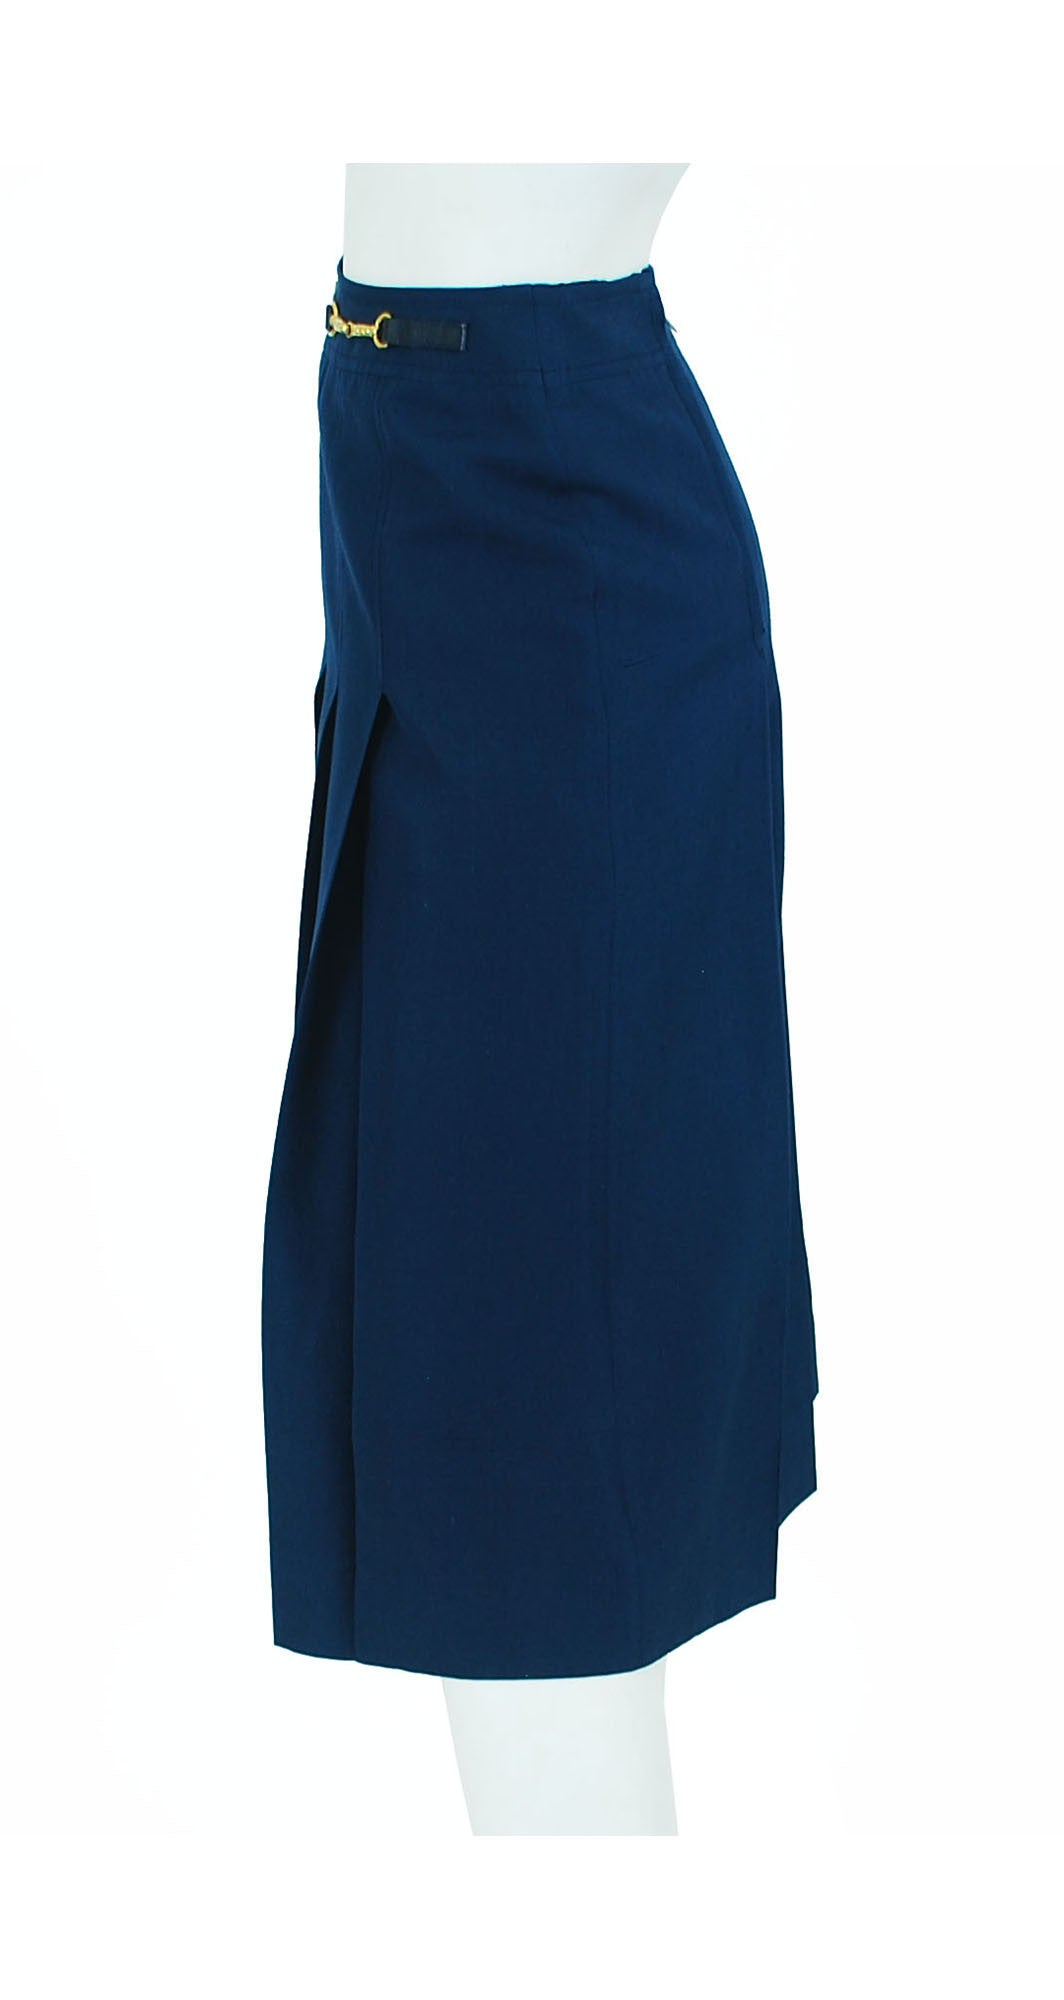 1970s Navy Raw Silk Pleated Skirt